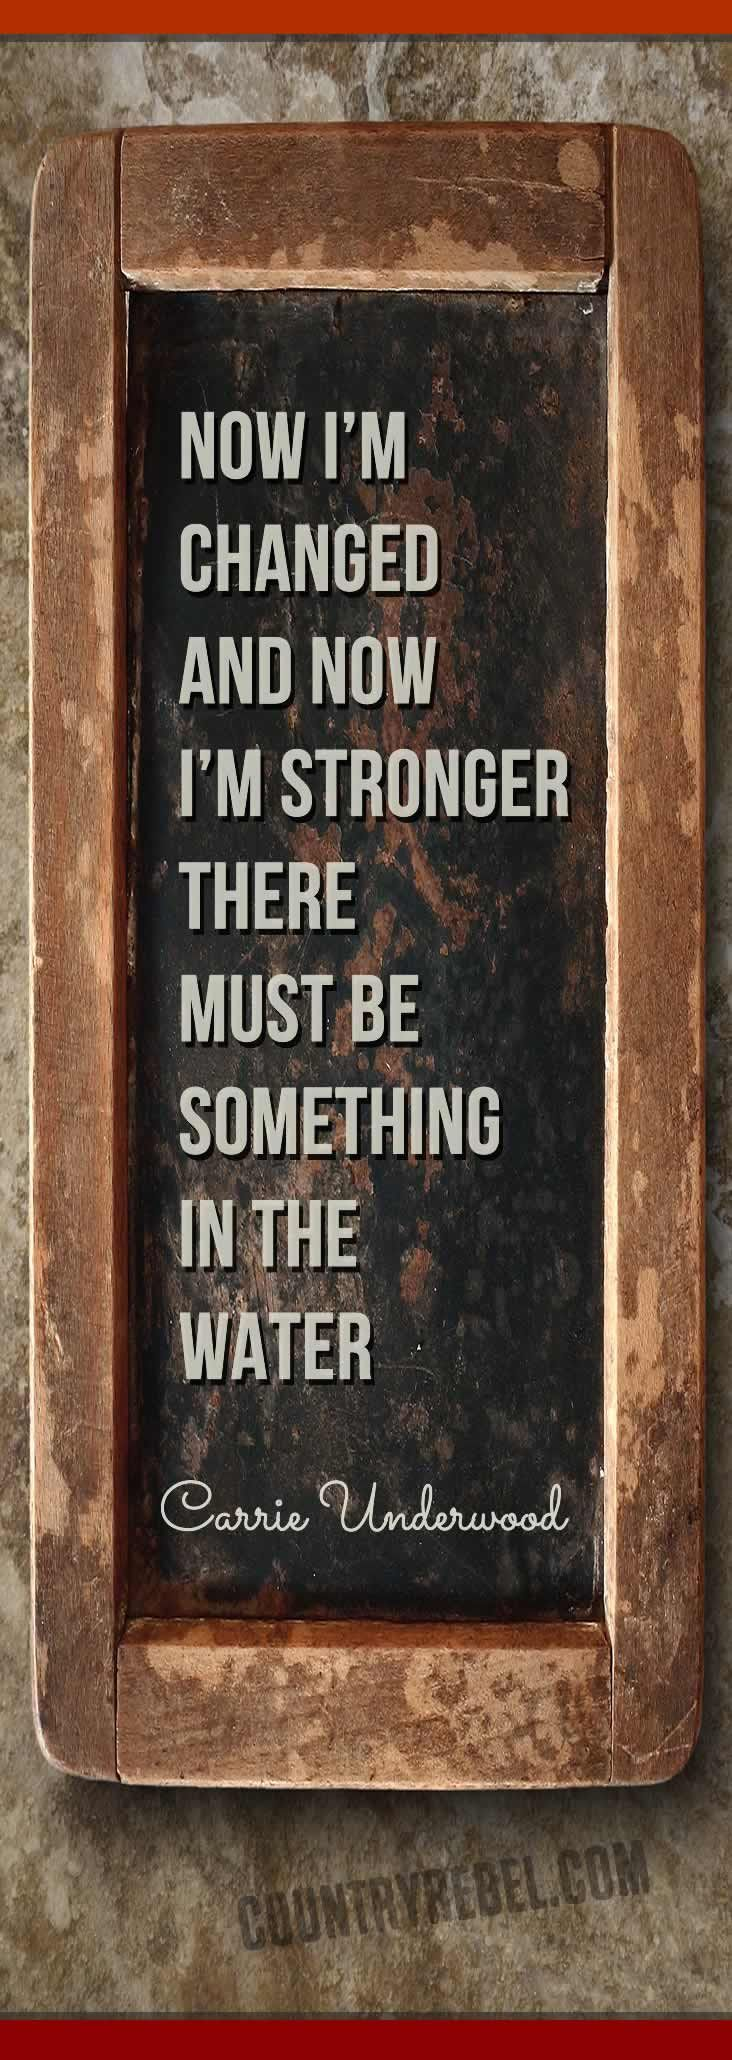 Country Music Lyrics - Carrie Underwood Quotes - Something In the Water | Country Music VIDEO at Country Rebel >> http://countryrebel.com/blogs/videos/18194131-carrie-underwood-something-in-the-water